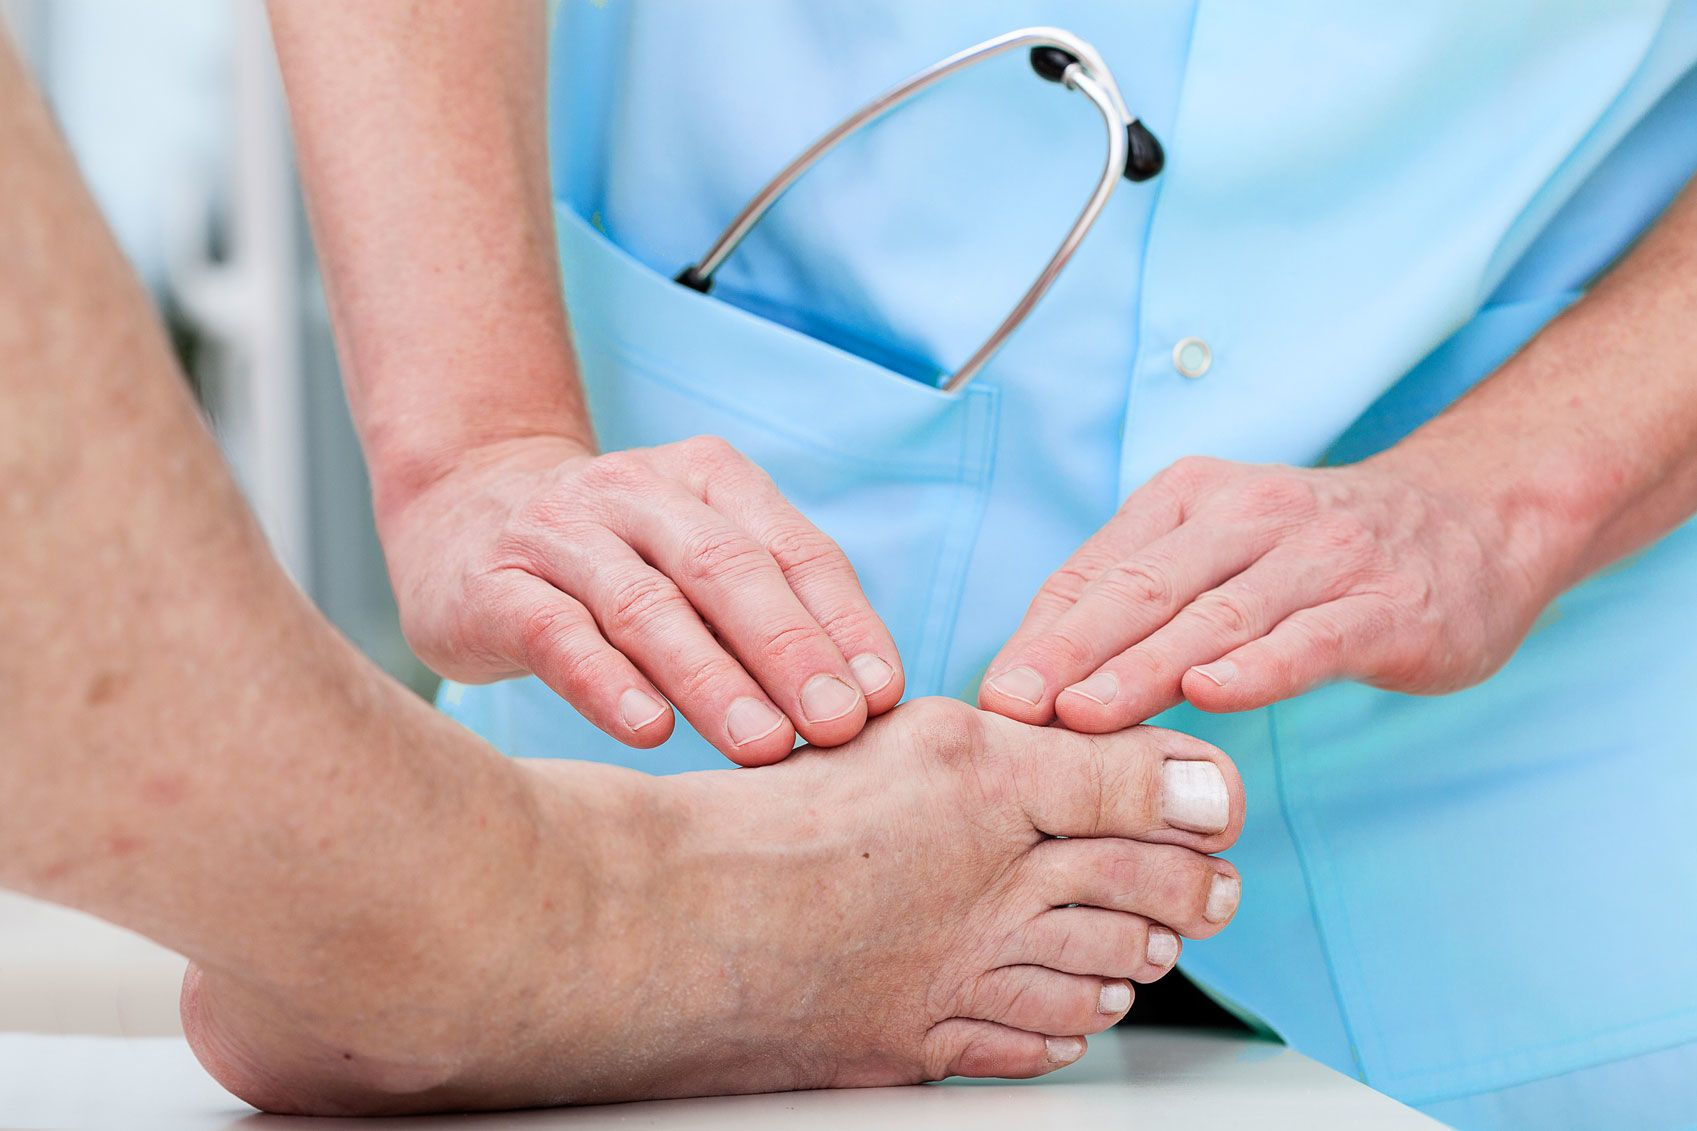 Doctor touching toe surgery patient's foot